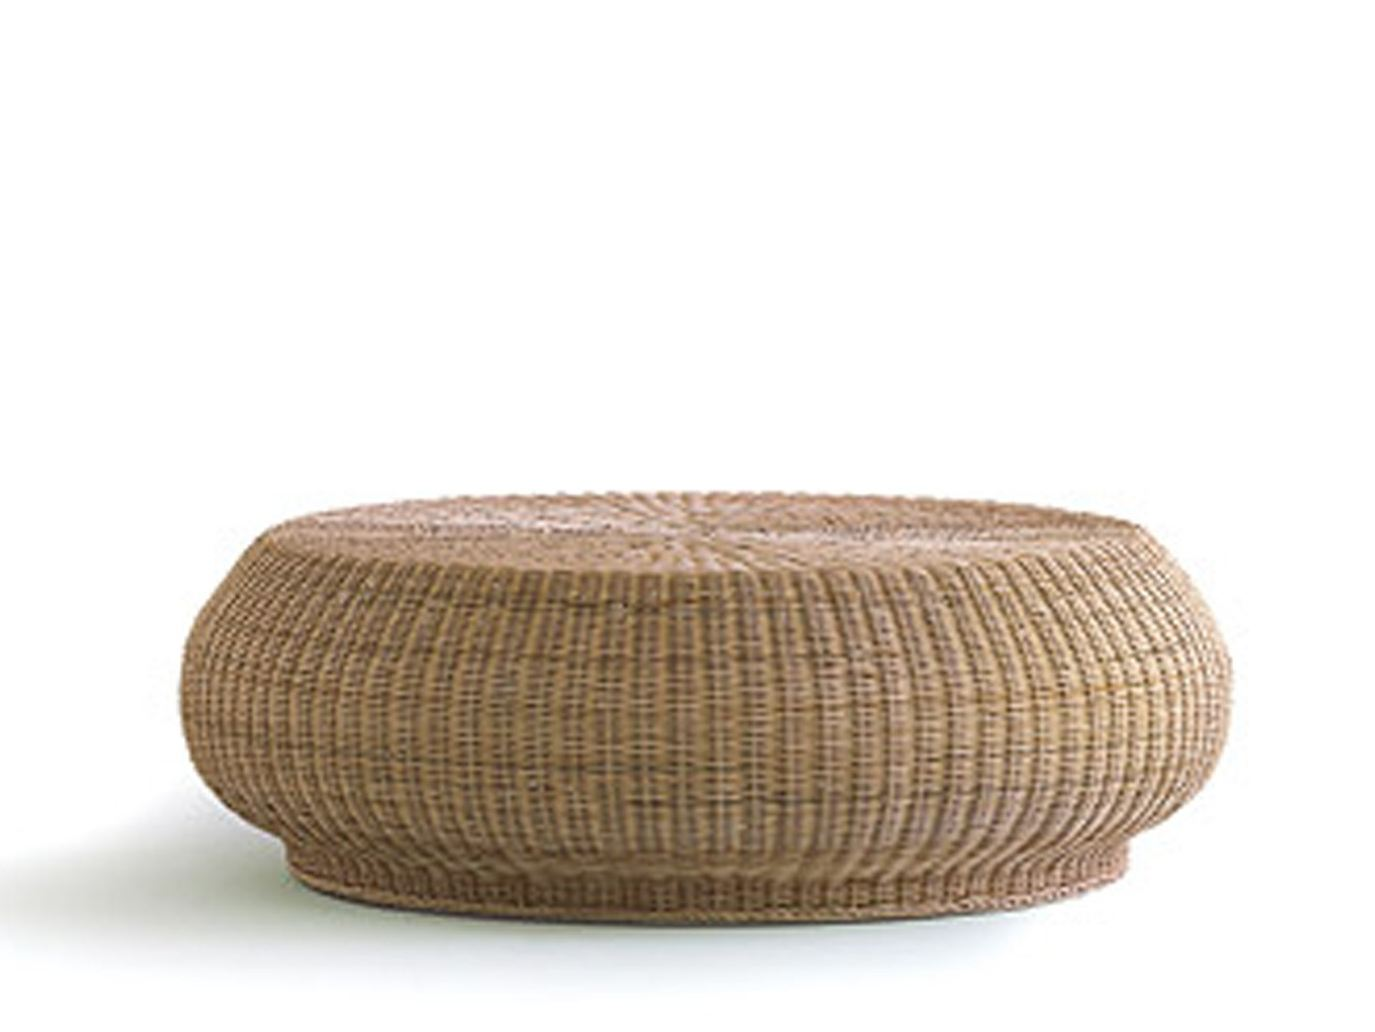 Round Rattan Coffee Table Design Best Rattan Coffee Table Rattan Round Coffee Table Wicker Porch Furniture Interior 2016 (Image 7 of 10)